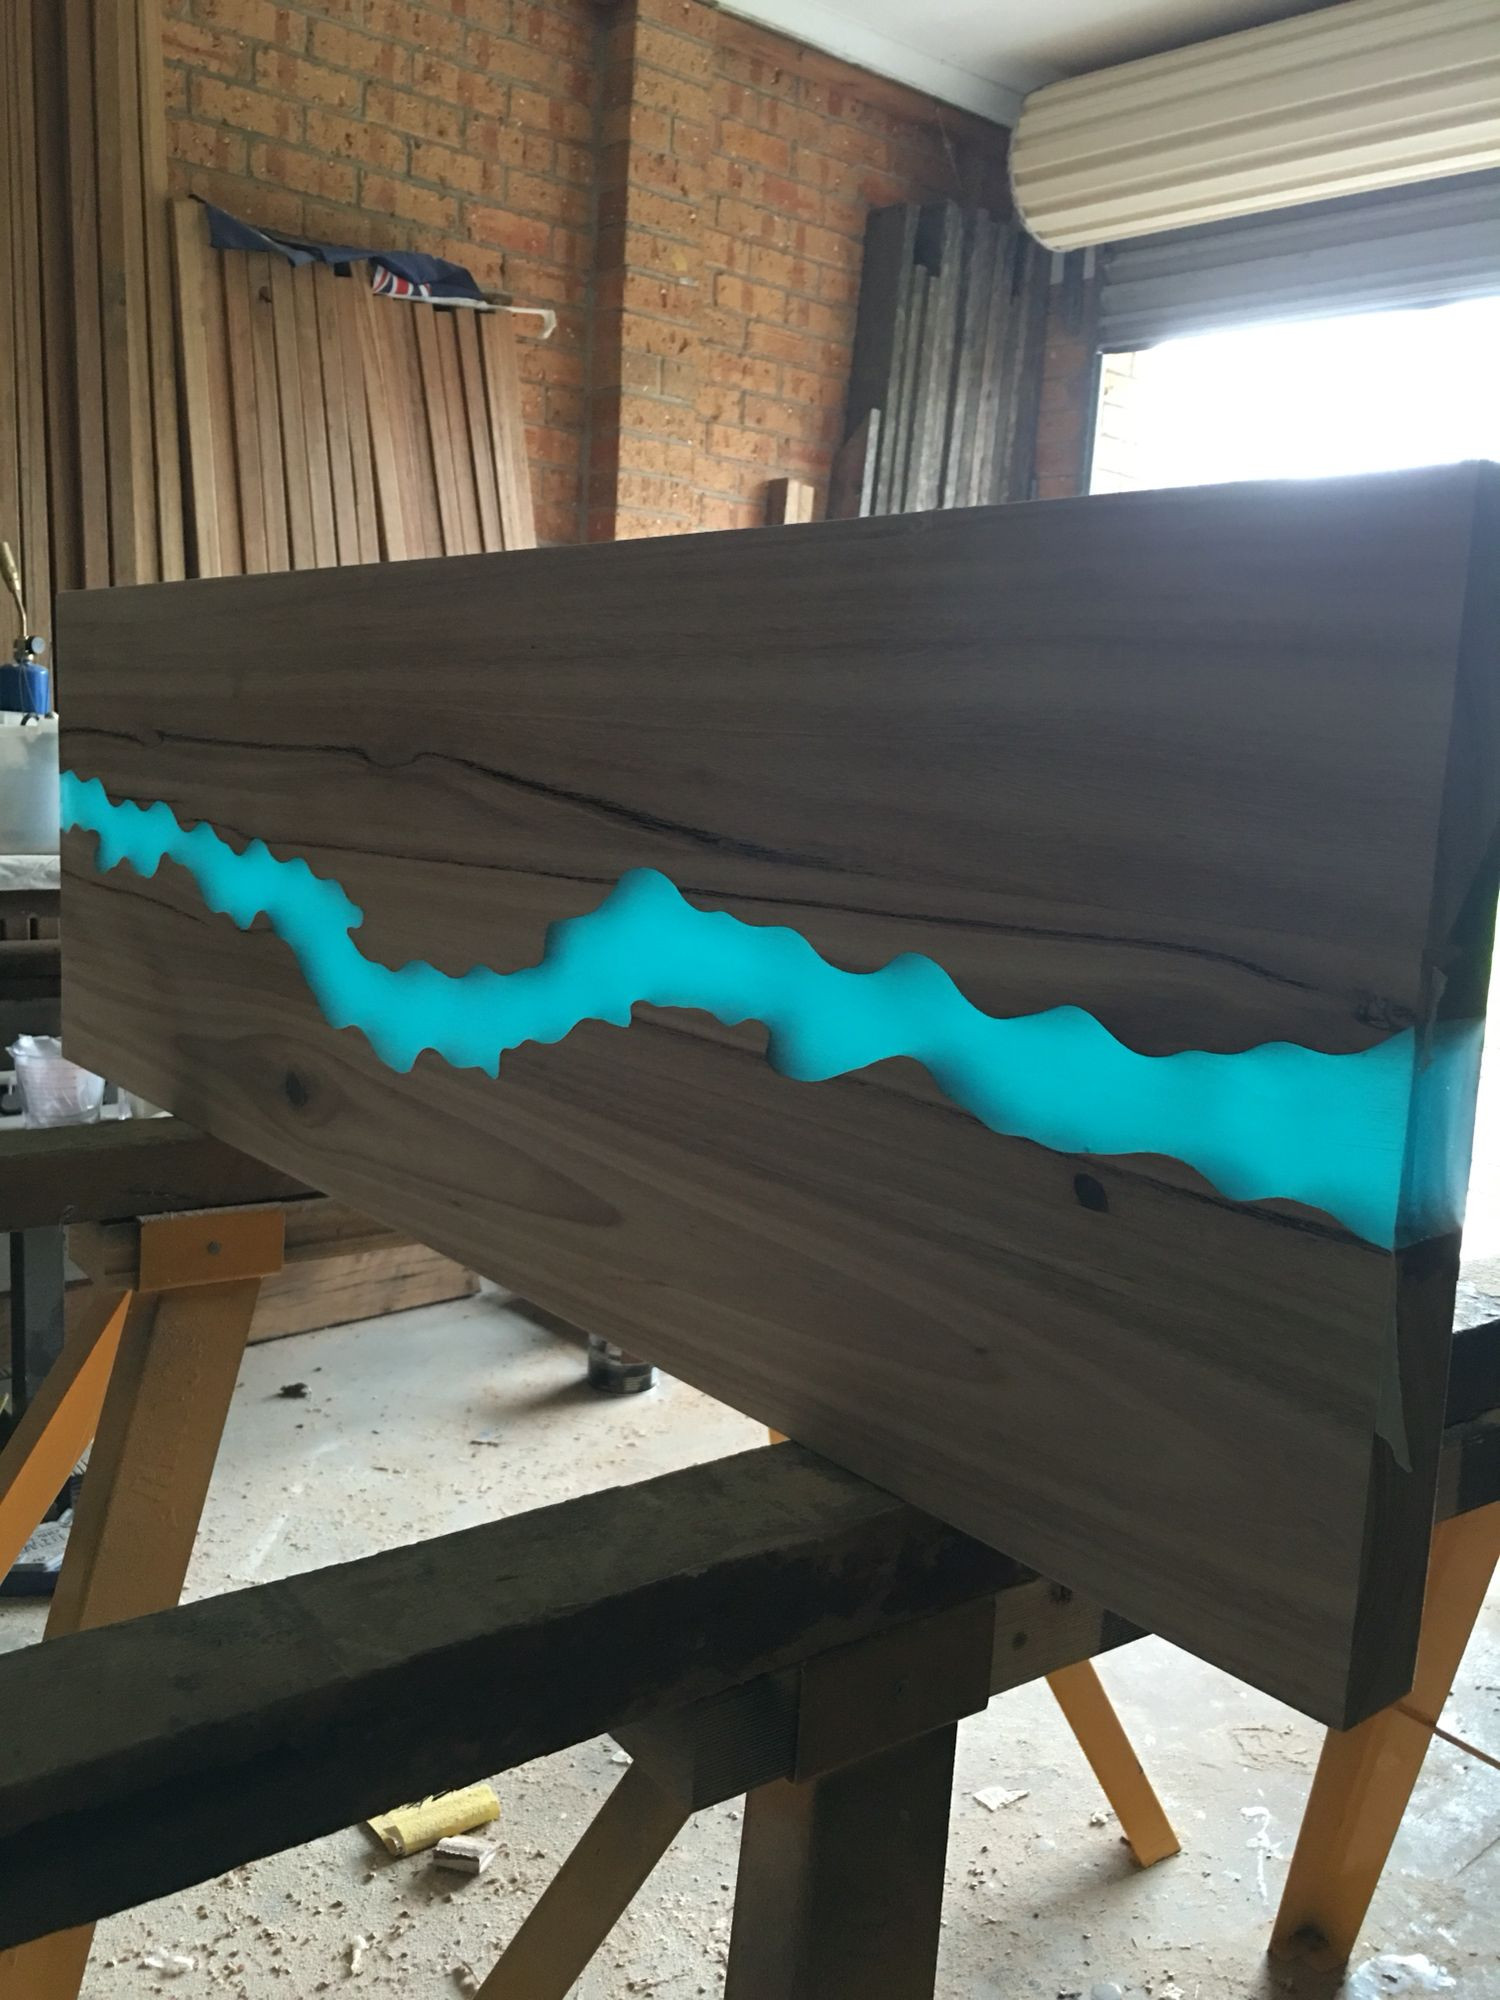 Best ideas about DIY Resin Table . Save or Pin Resin river table top … Now.